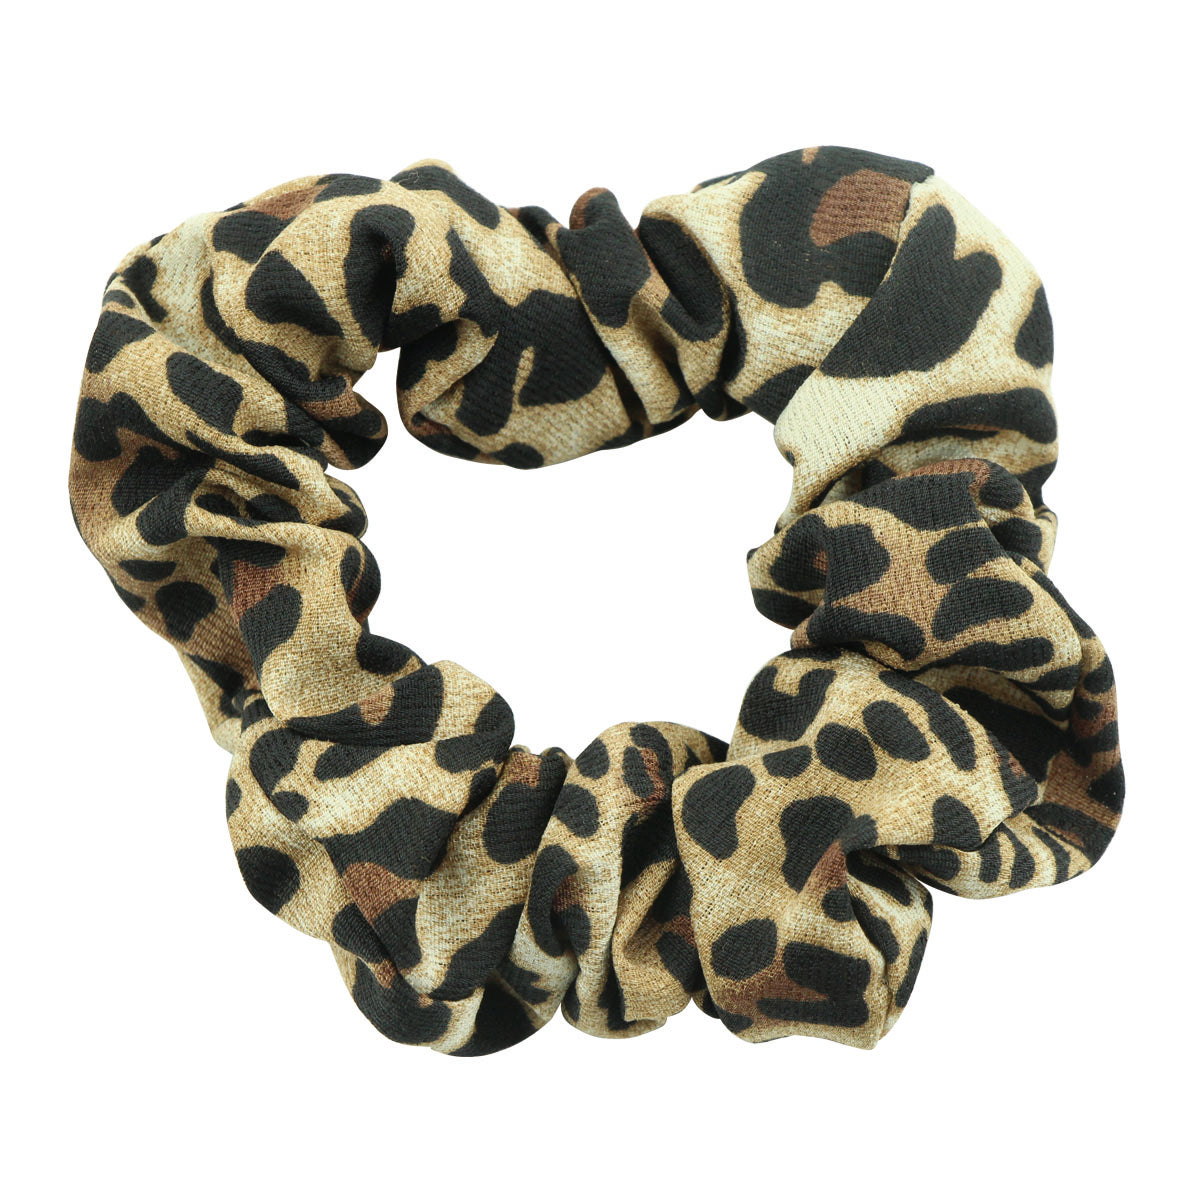 custom animal print leopard hair scrunchies private label scrunchies hairband wholesale at factory price 5593 - SOHOBUCKS CO.,LIMITED